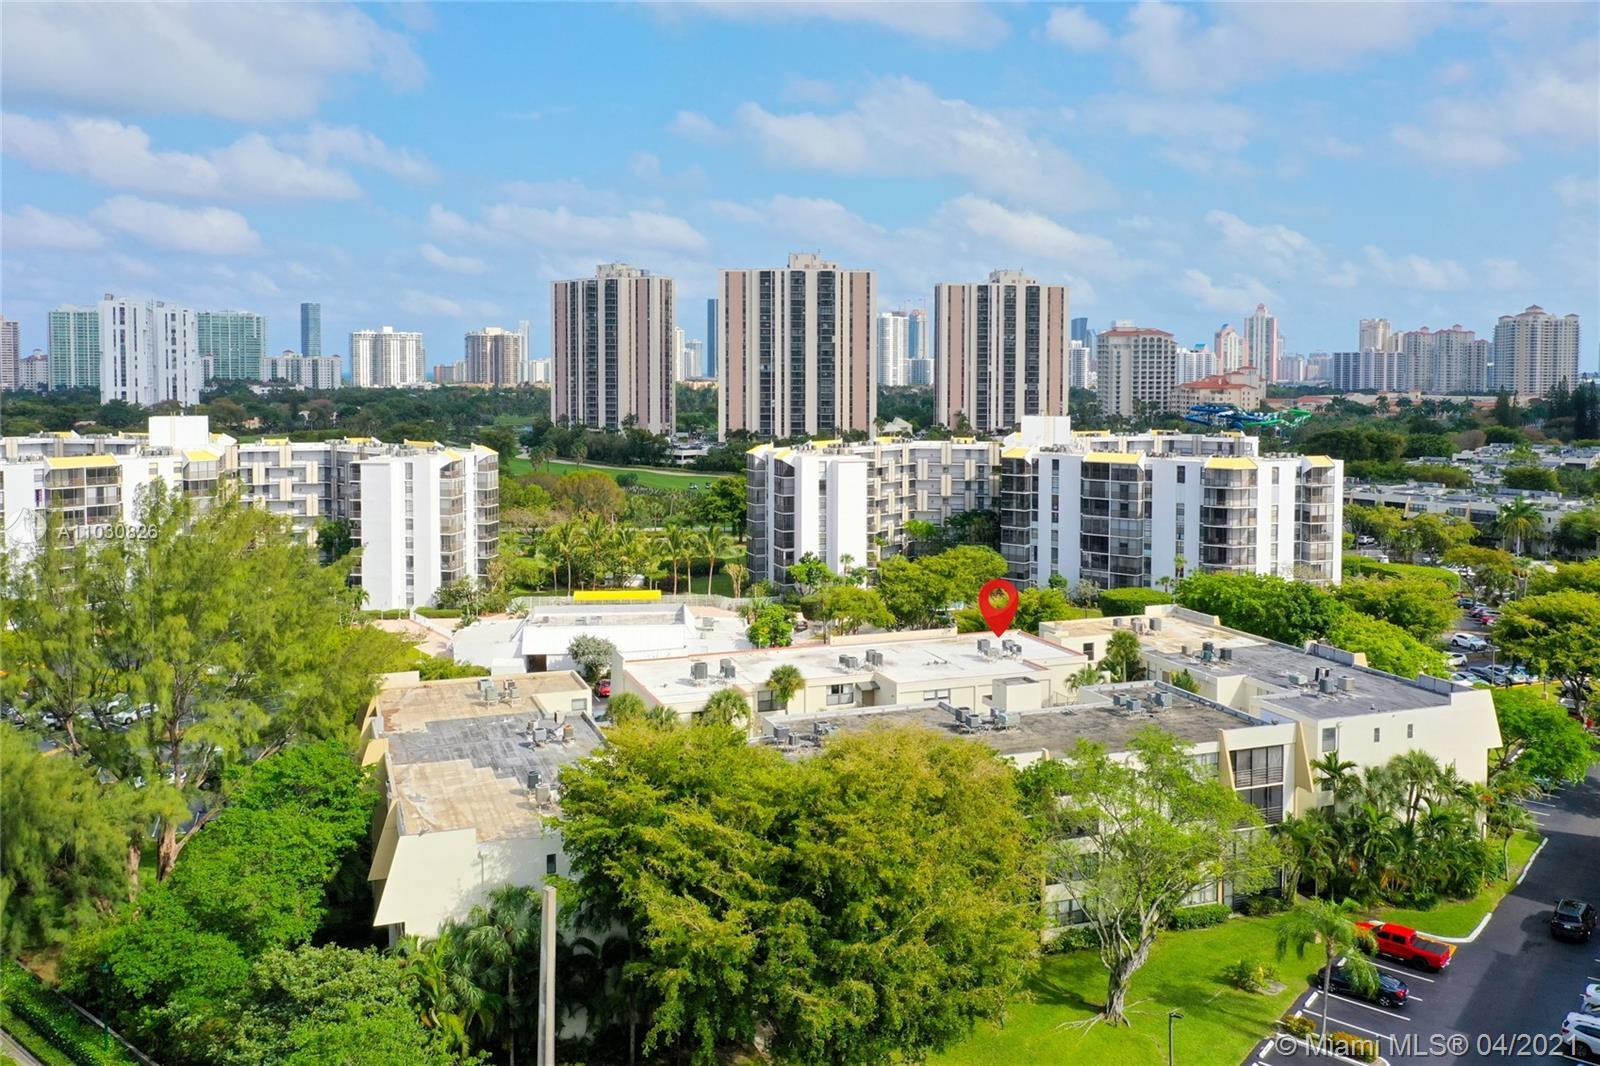 Renovated 3 bedrooms and 2 bathrooms garden view condominium in Villa Dorada located on Aventura Cir